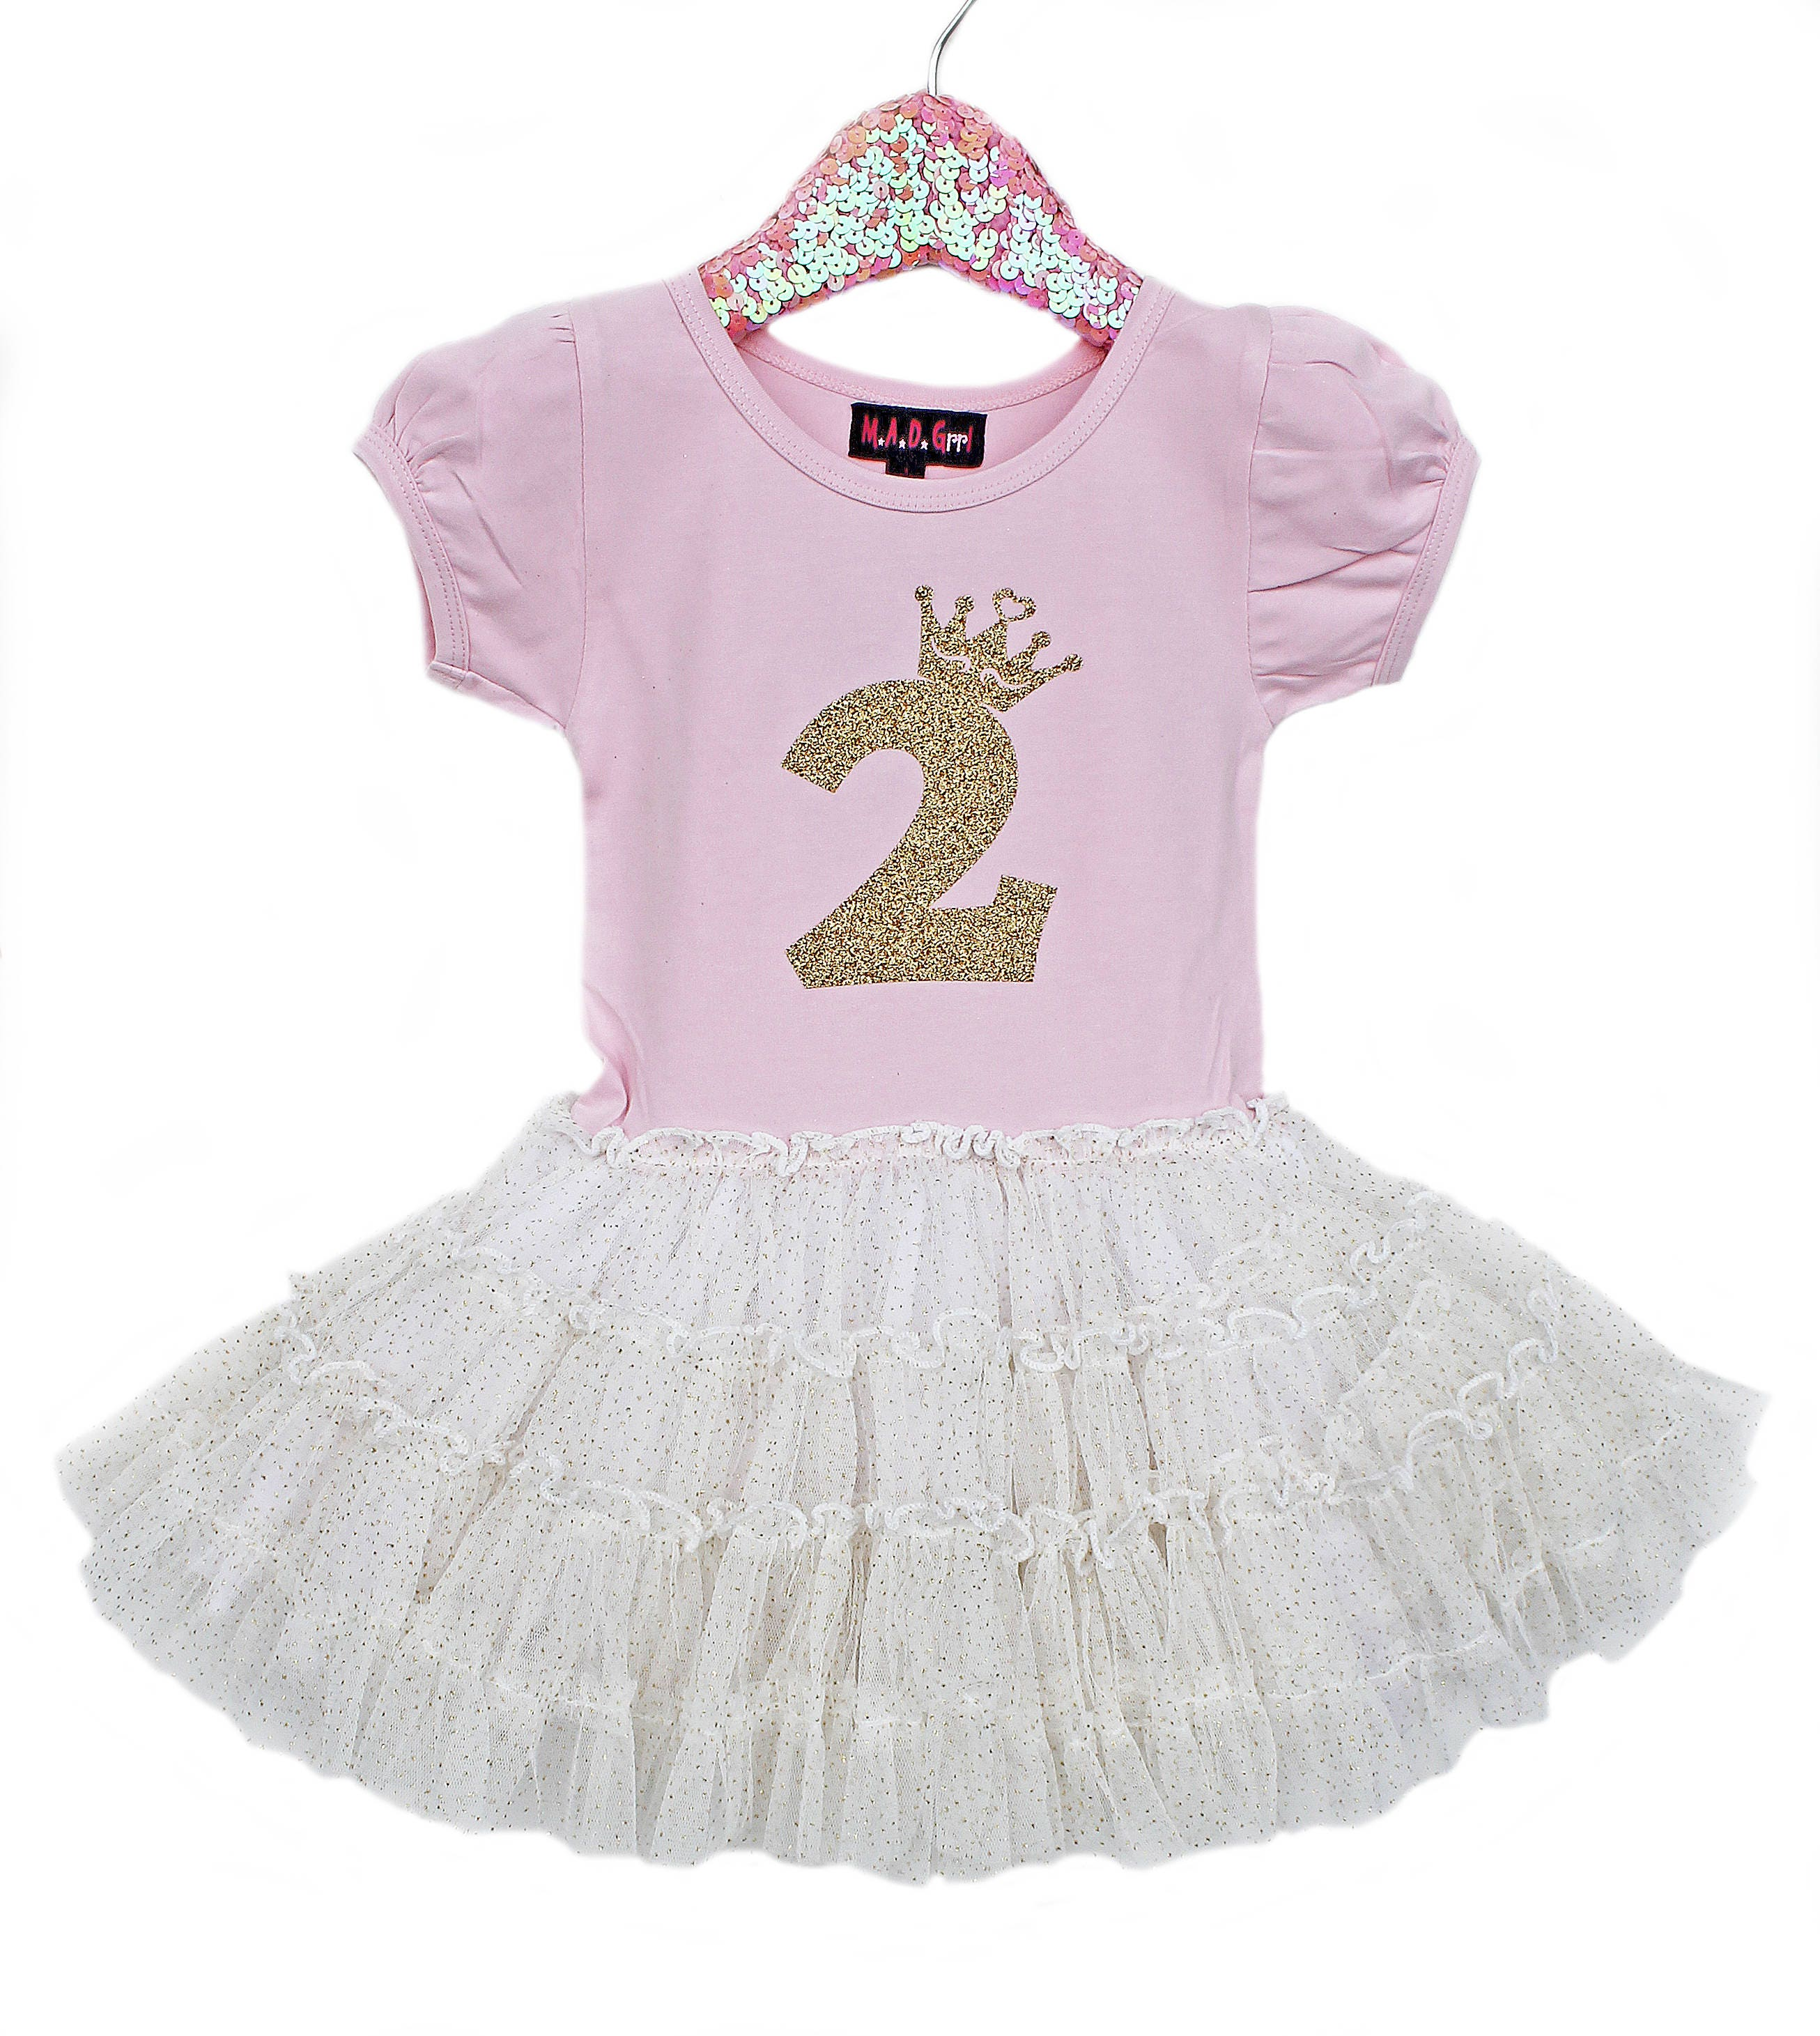 4209a4974 2nd Birthday Dresses For Toddlers | Saddha